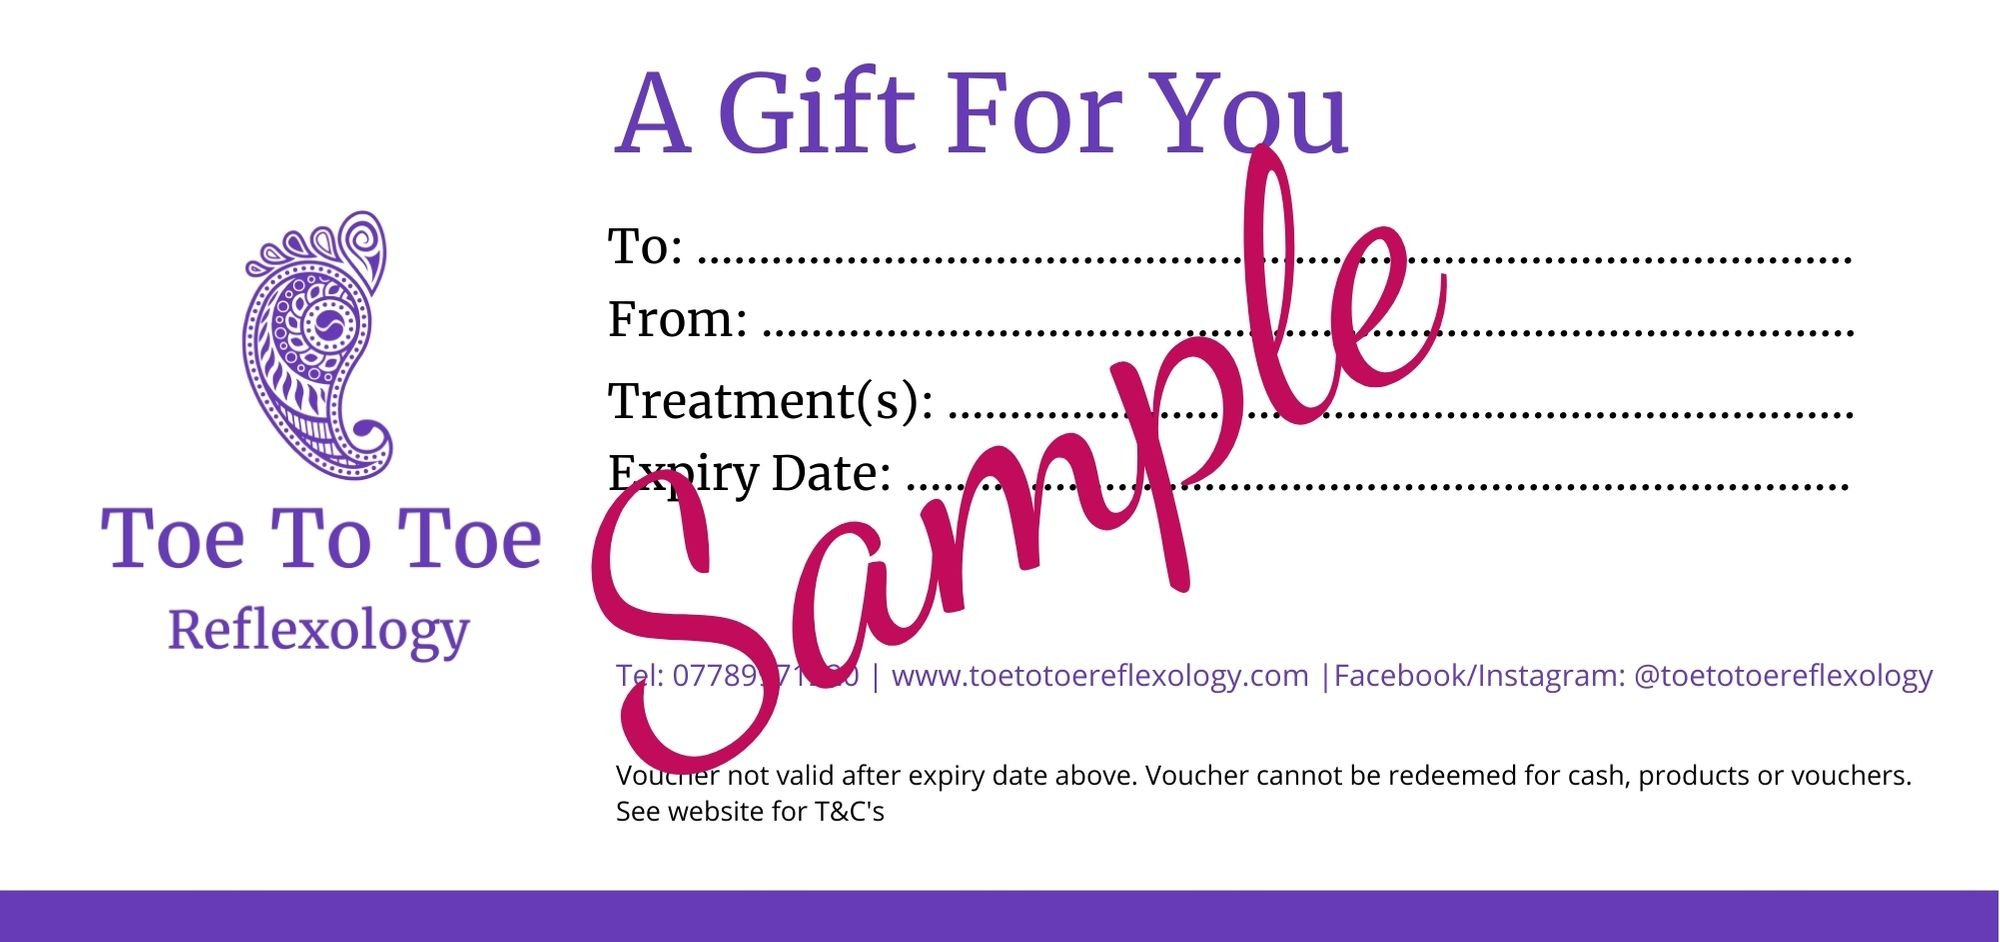 sample gift voucher created for toe to toe reflexology